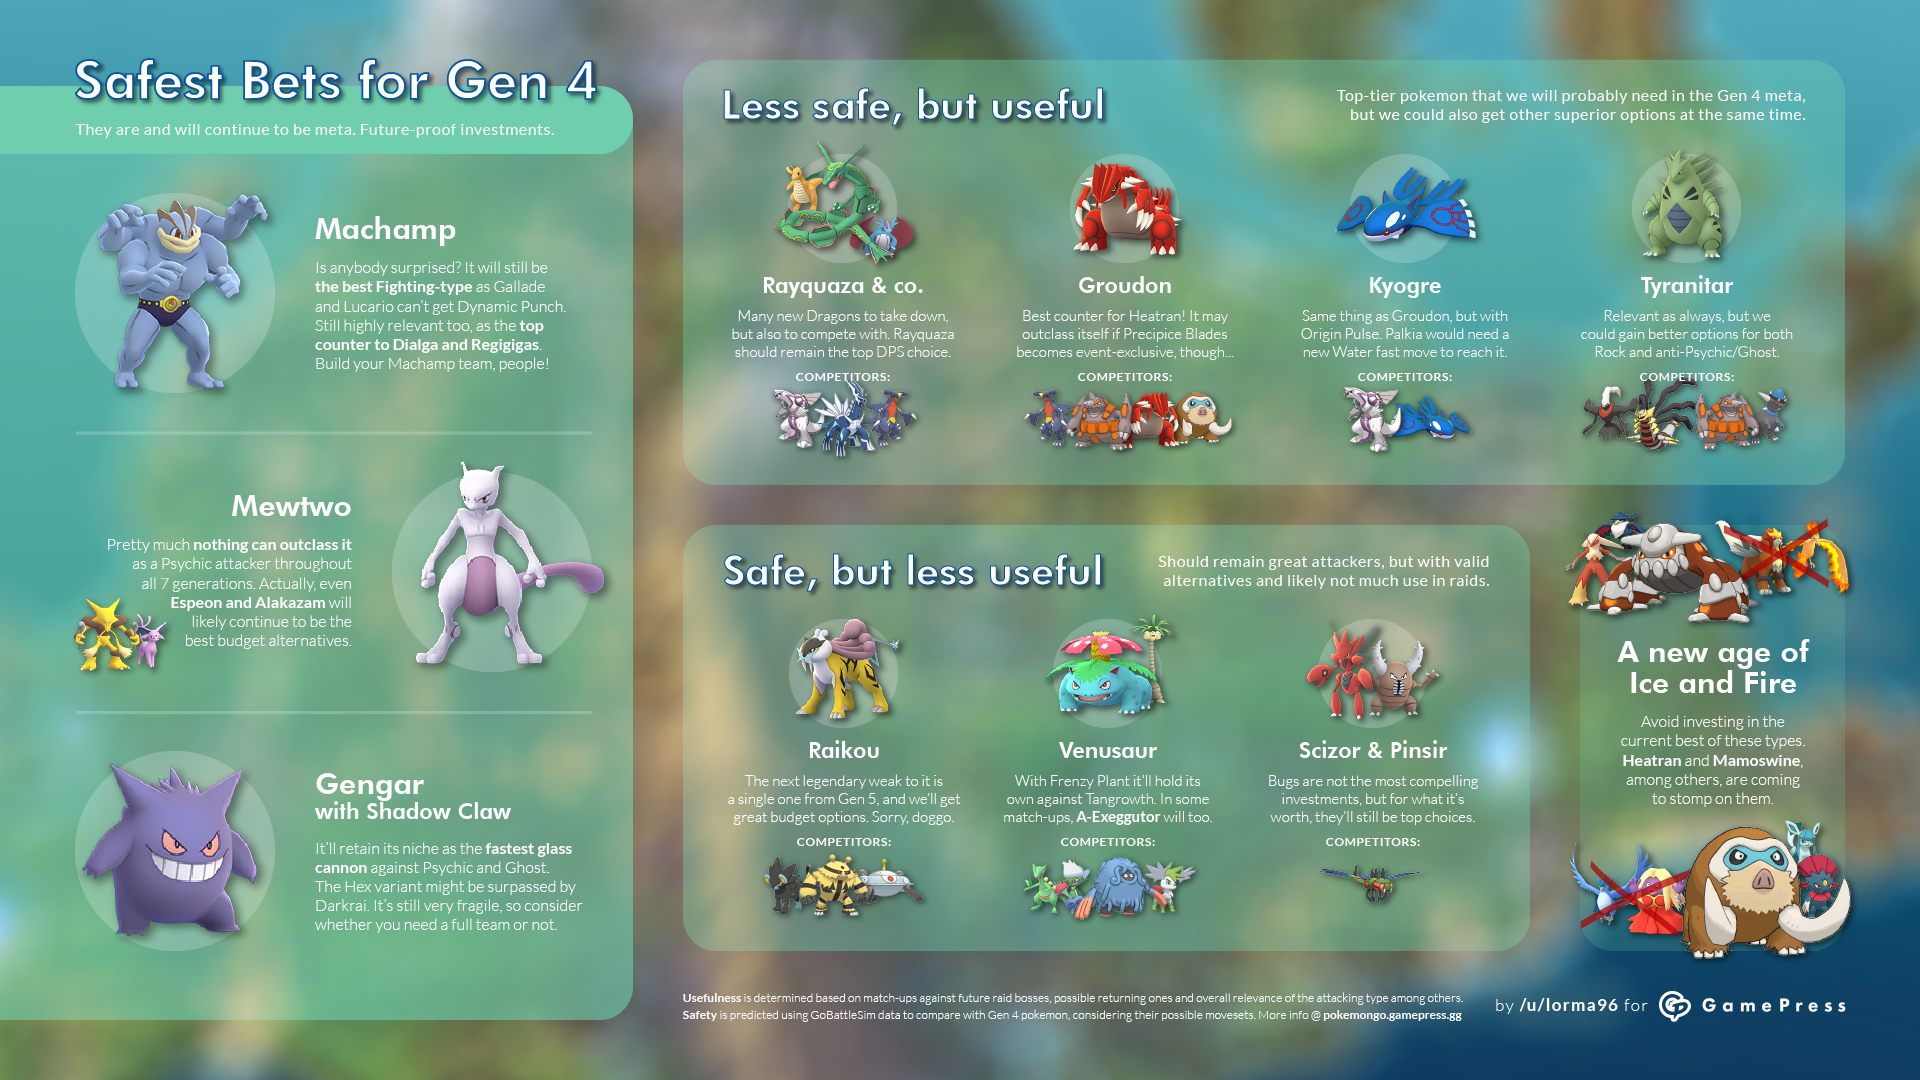 GamePress] The Safest Bets for Gen 4 : TheSilphRoad